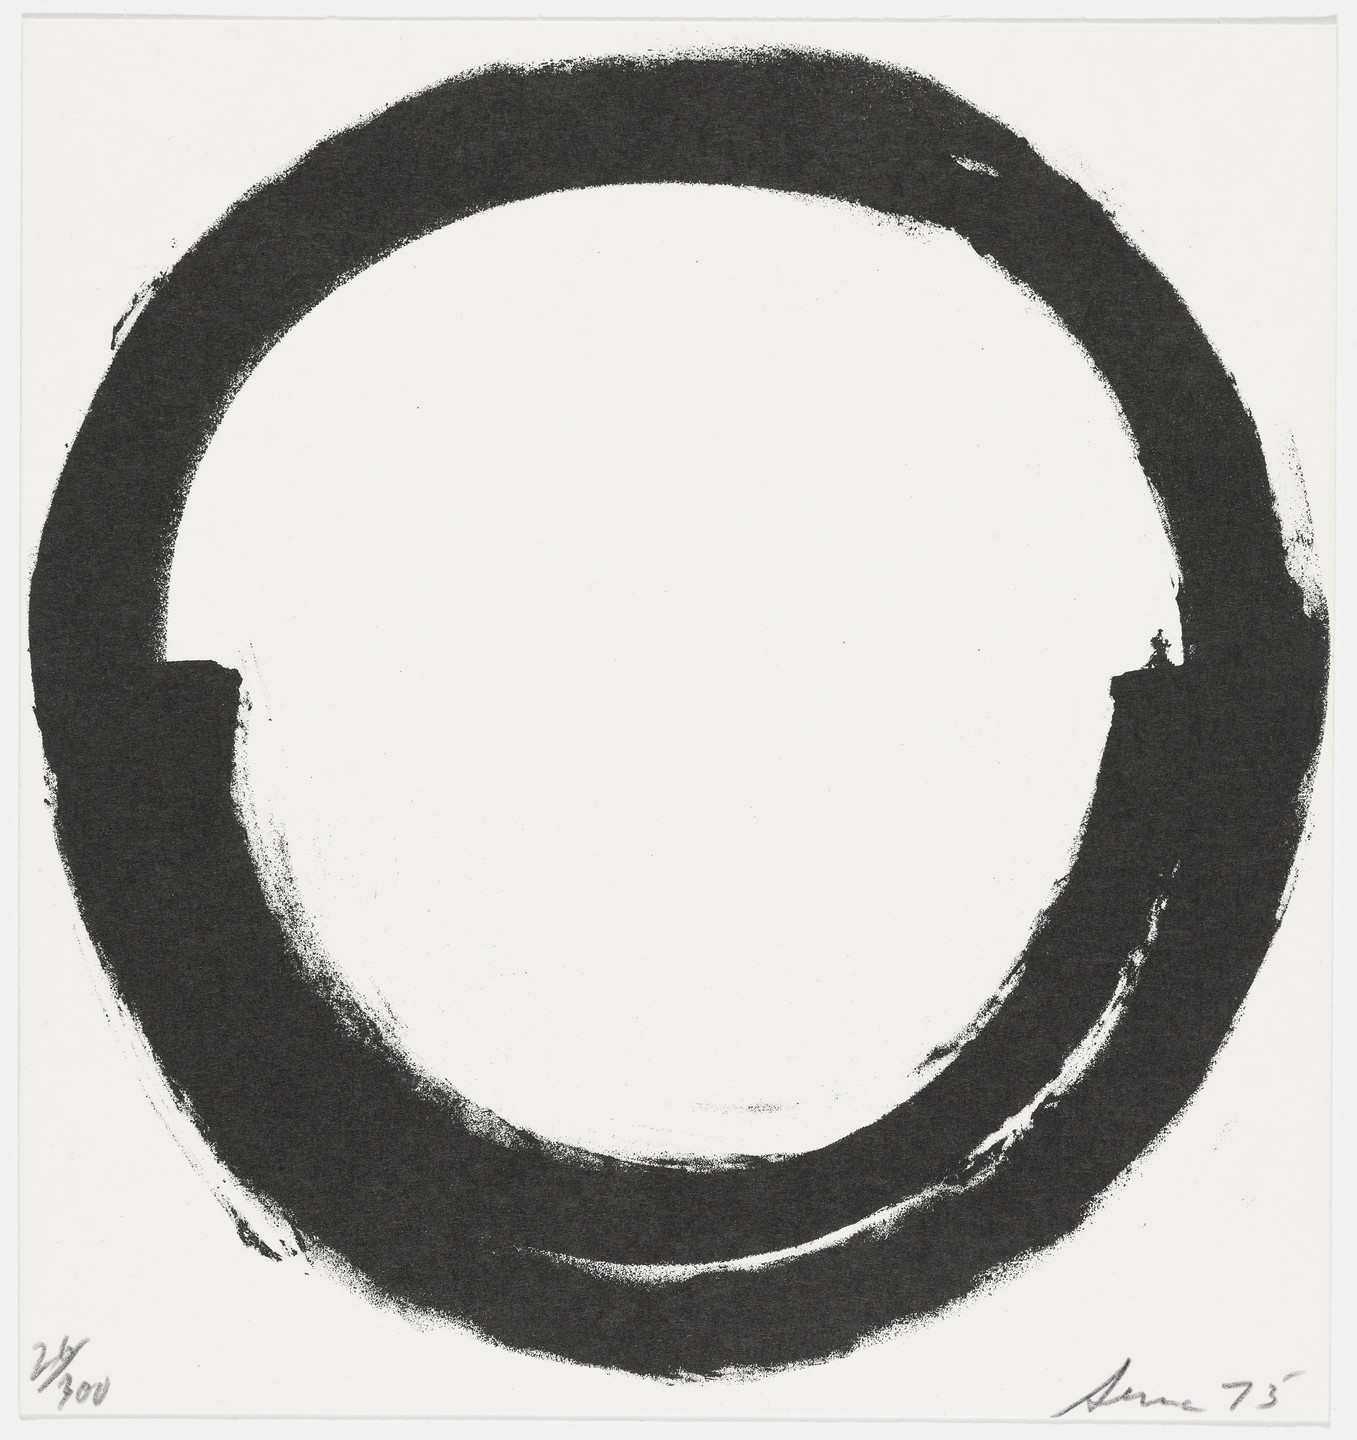 Richard Serra. Untitled from The New York Collection for Stockholm. 1973